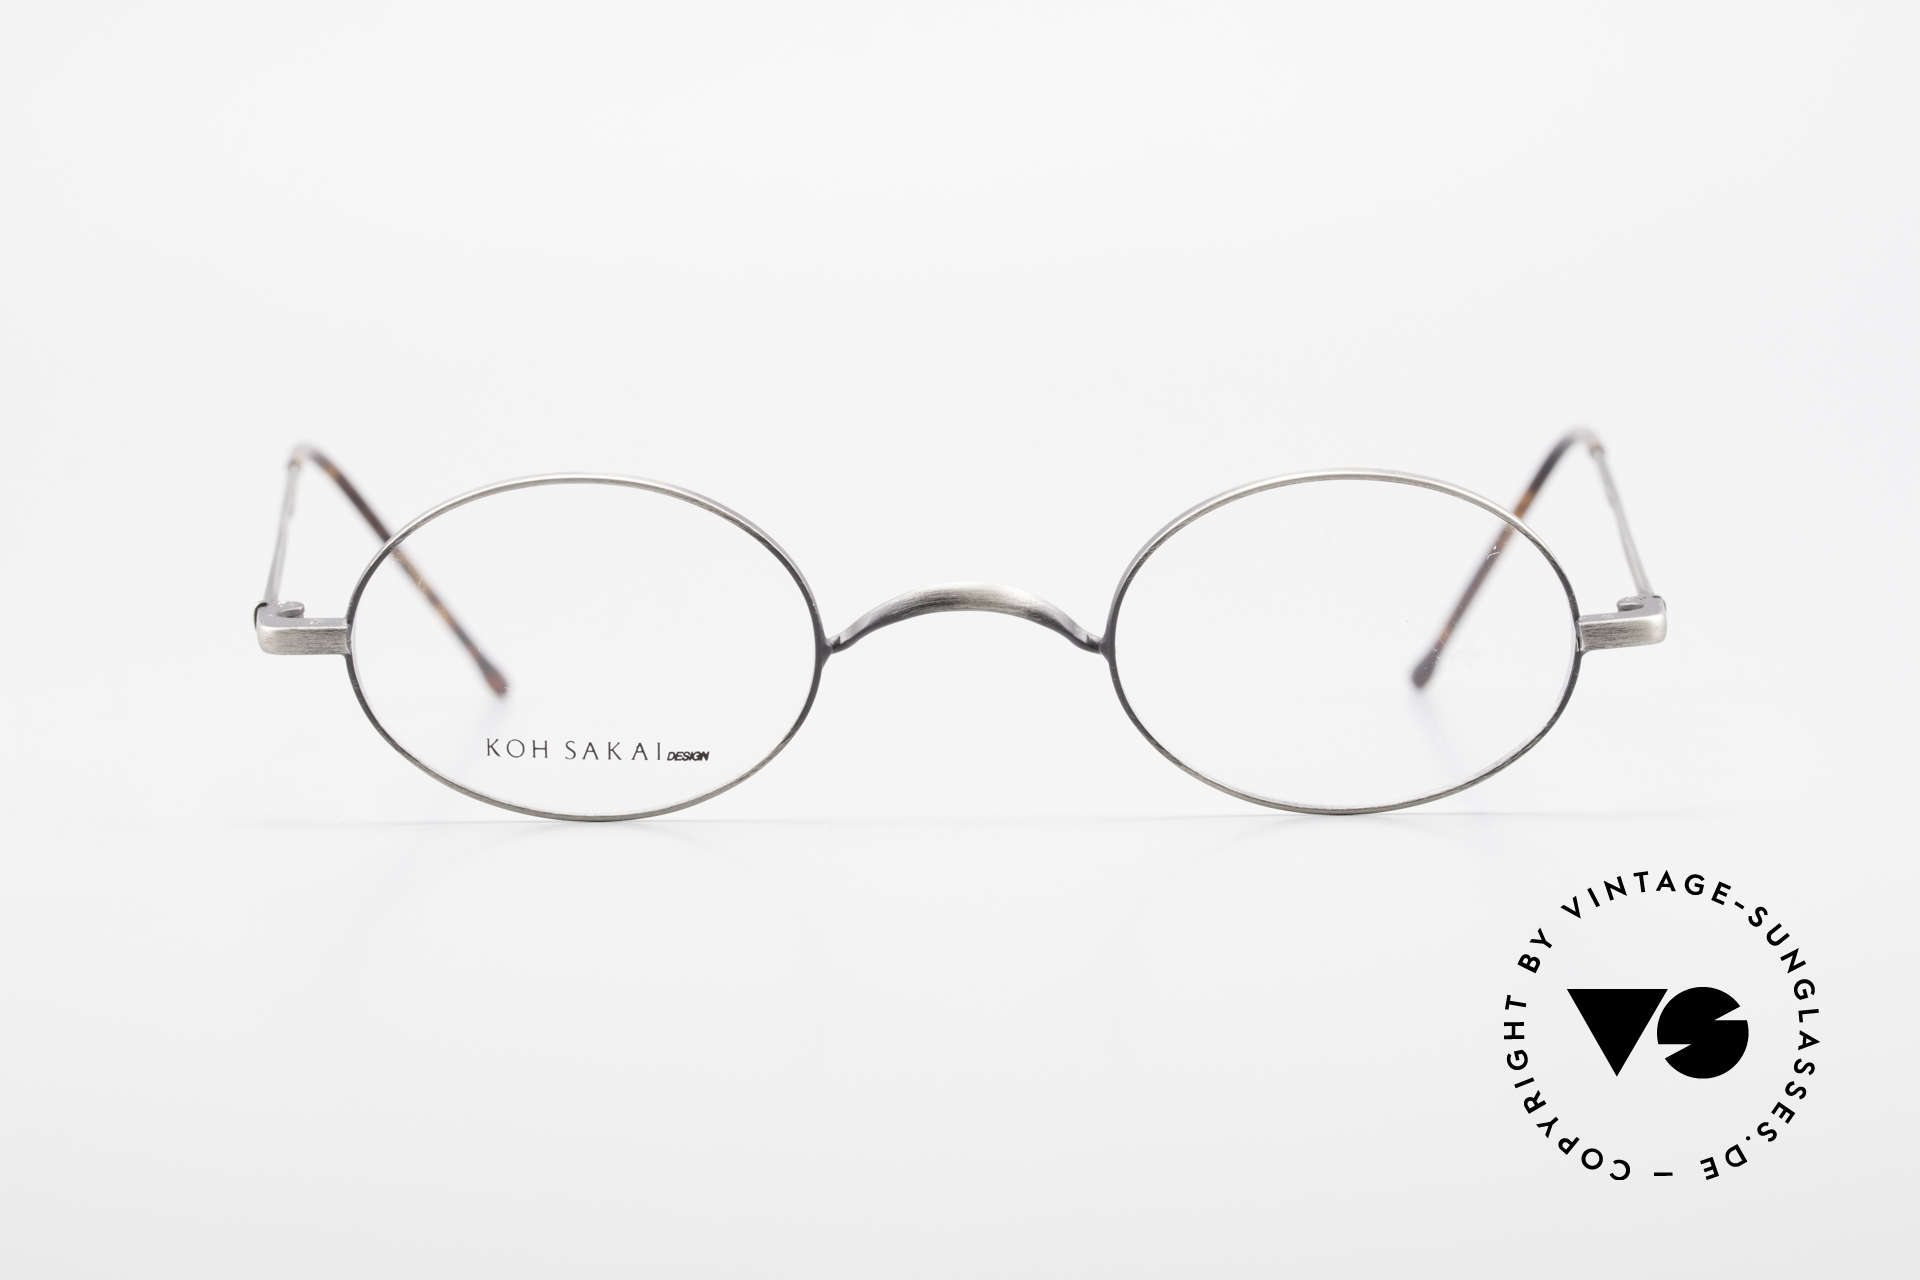 Koh Sakai KS9591 Small Oval Eyeglasses Clip On, Size: small, Made for Men and Women